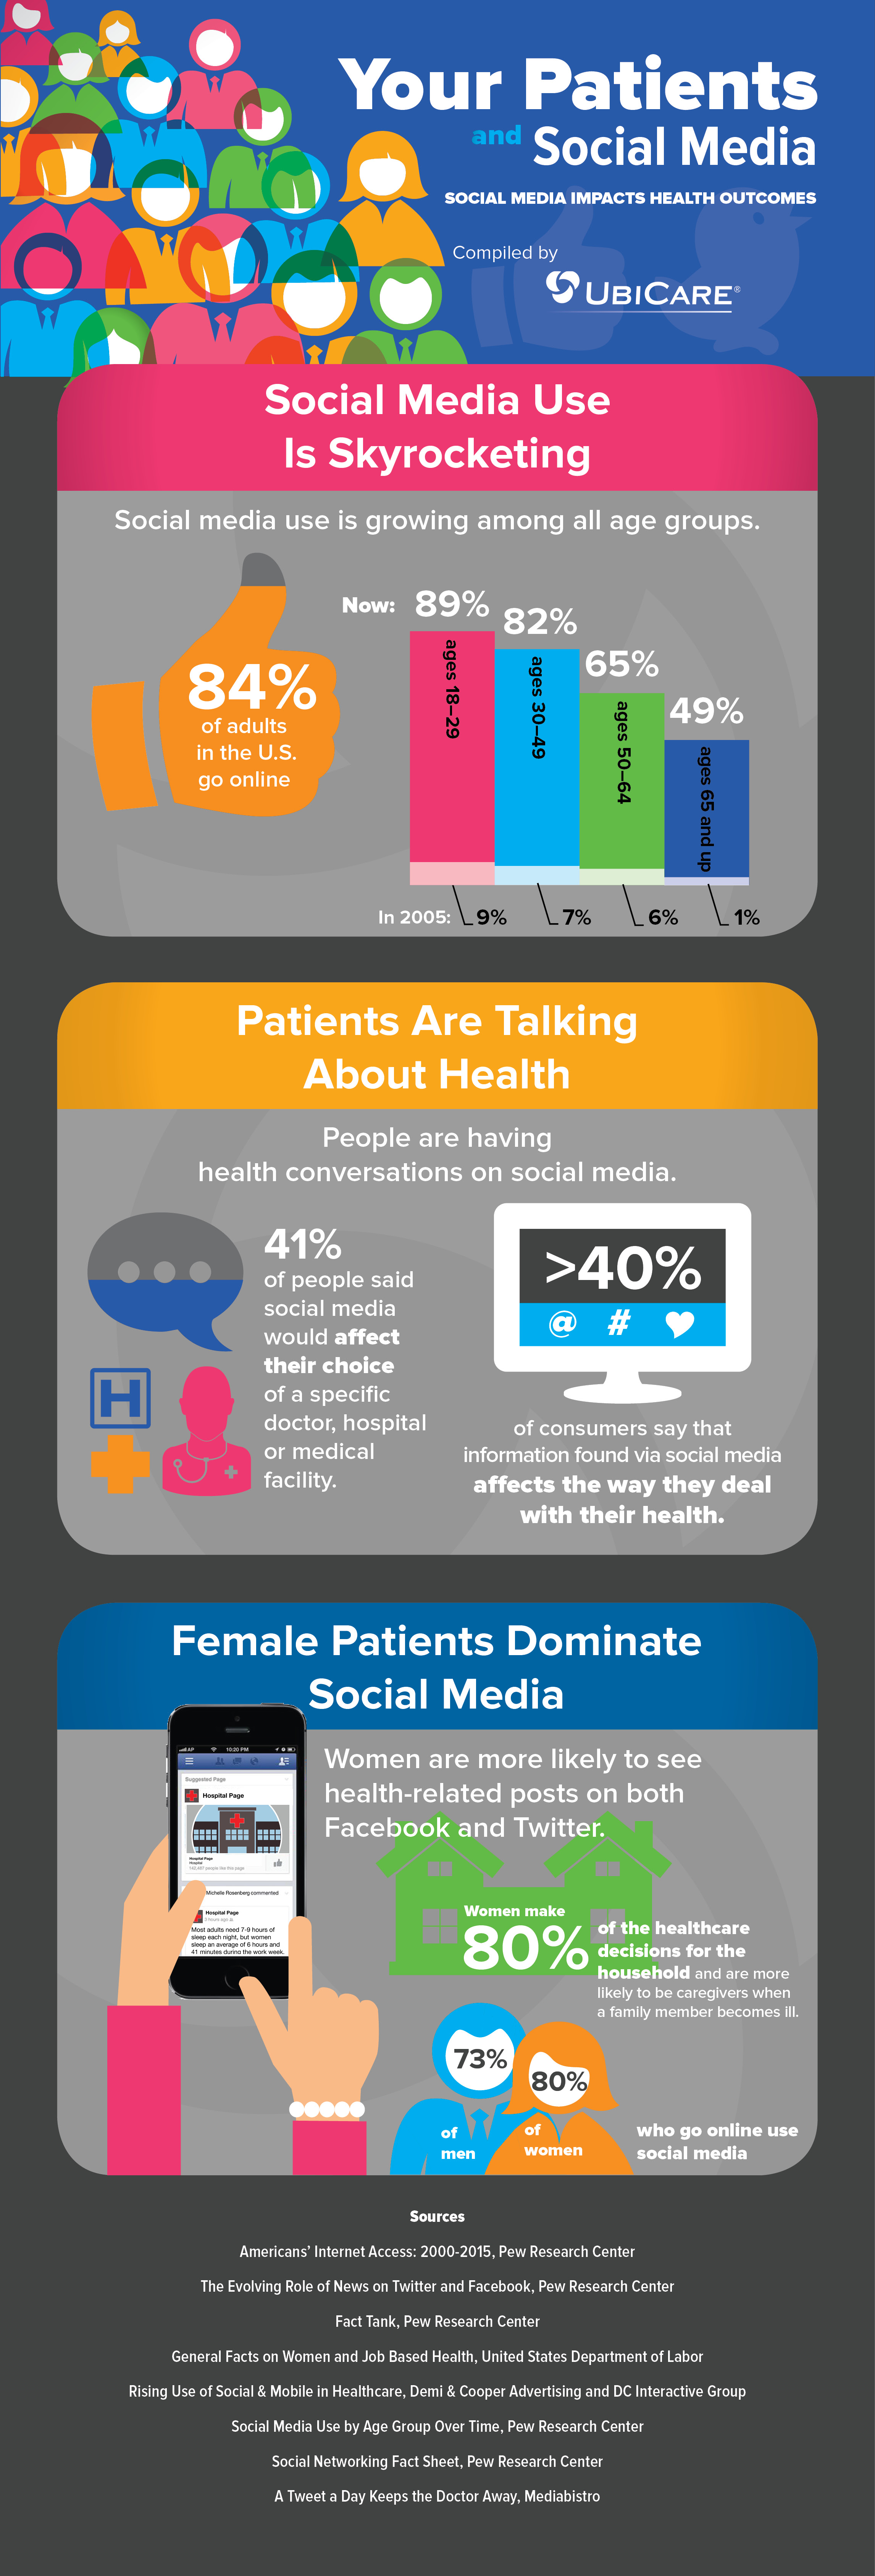 Your_Patients_and_Social_Media_infographic.jpg